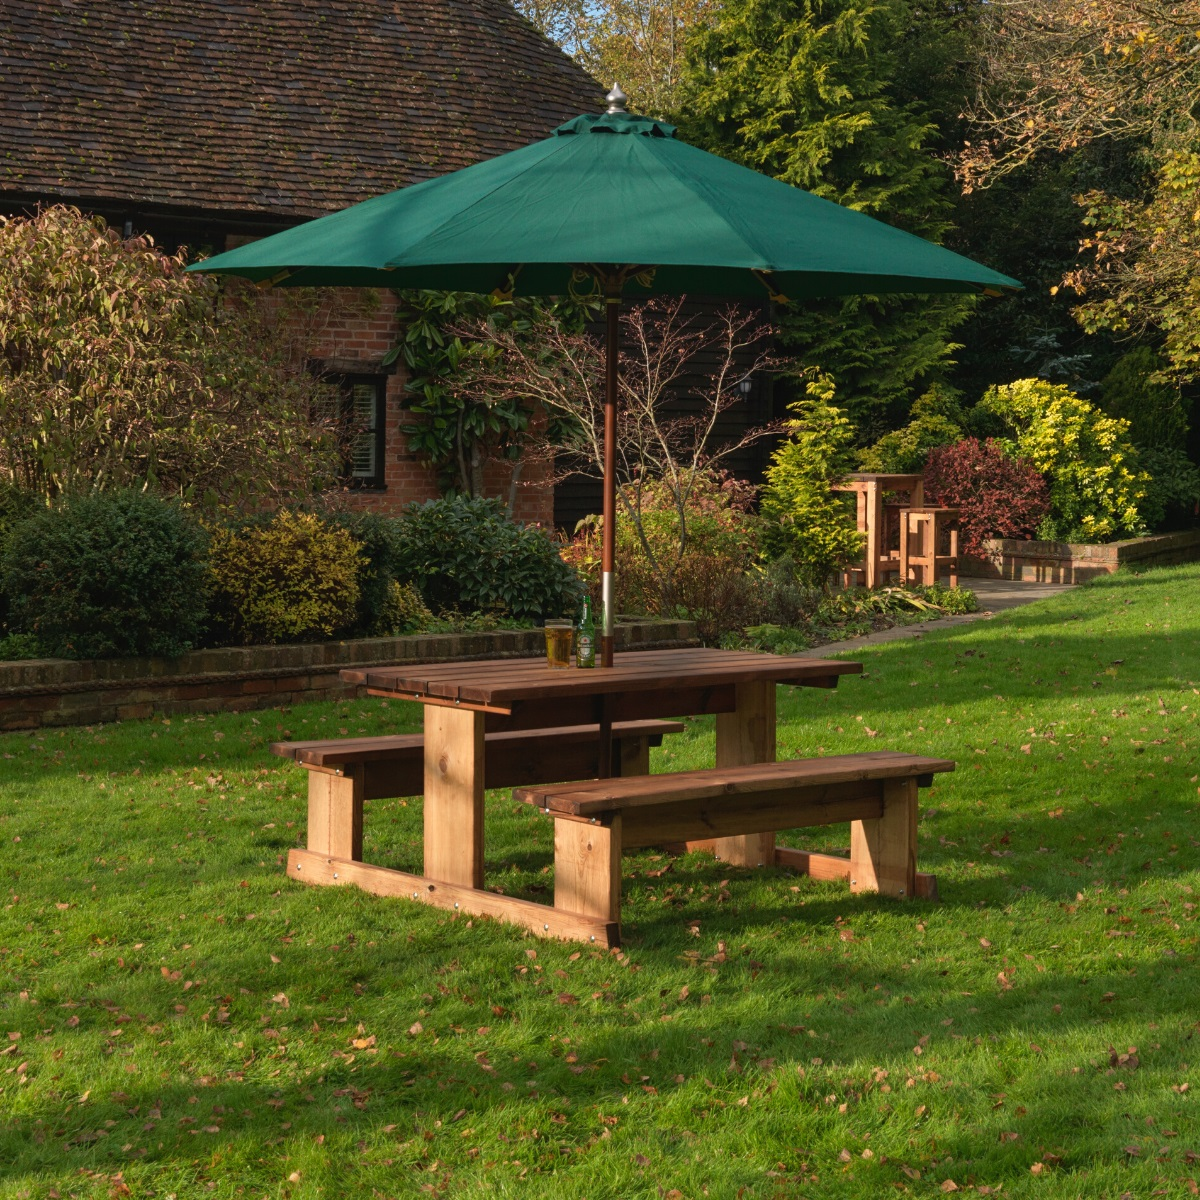 A wooden rectangular picnic table with a green parasol located on a garden lawn